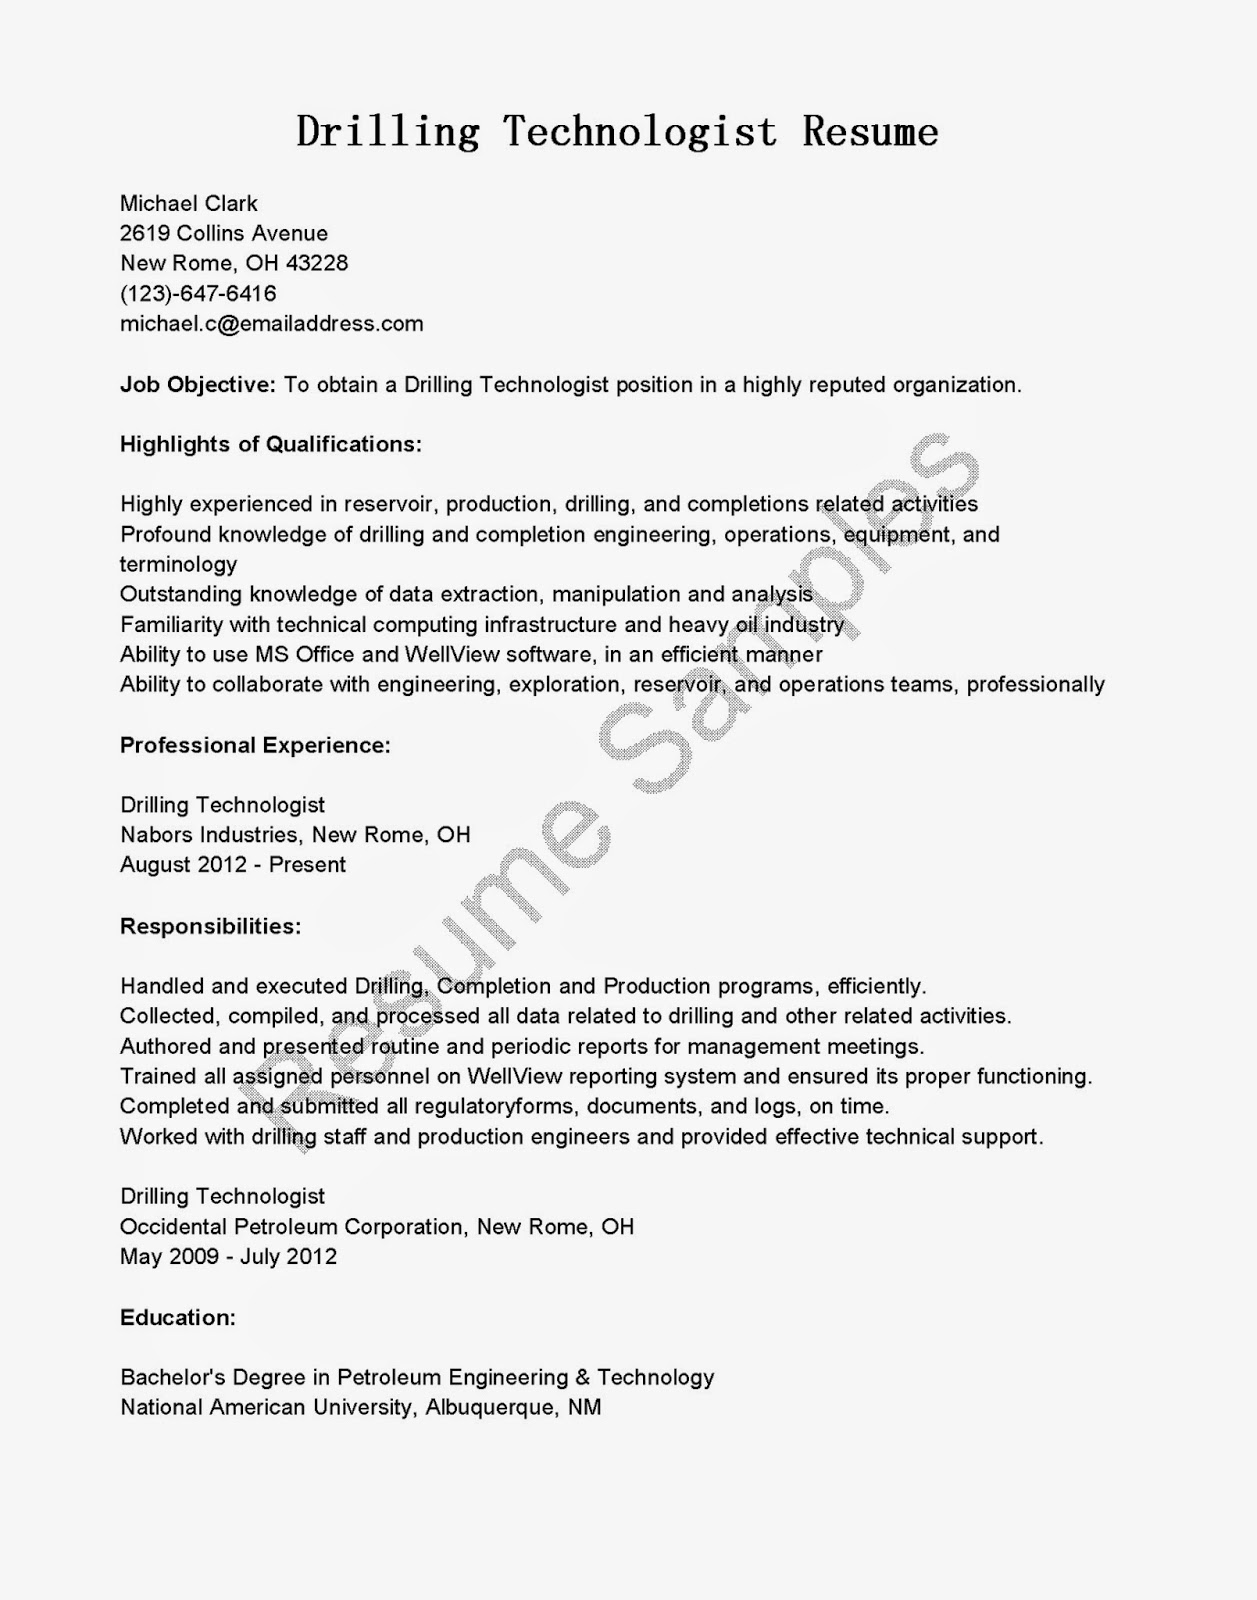 resume samples  drilling technologist resume sample